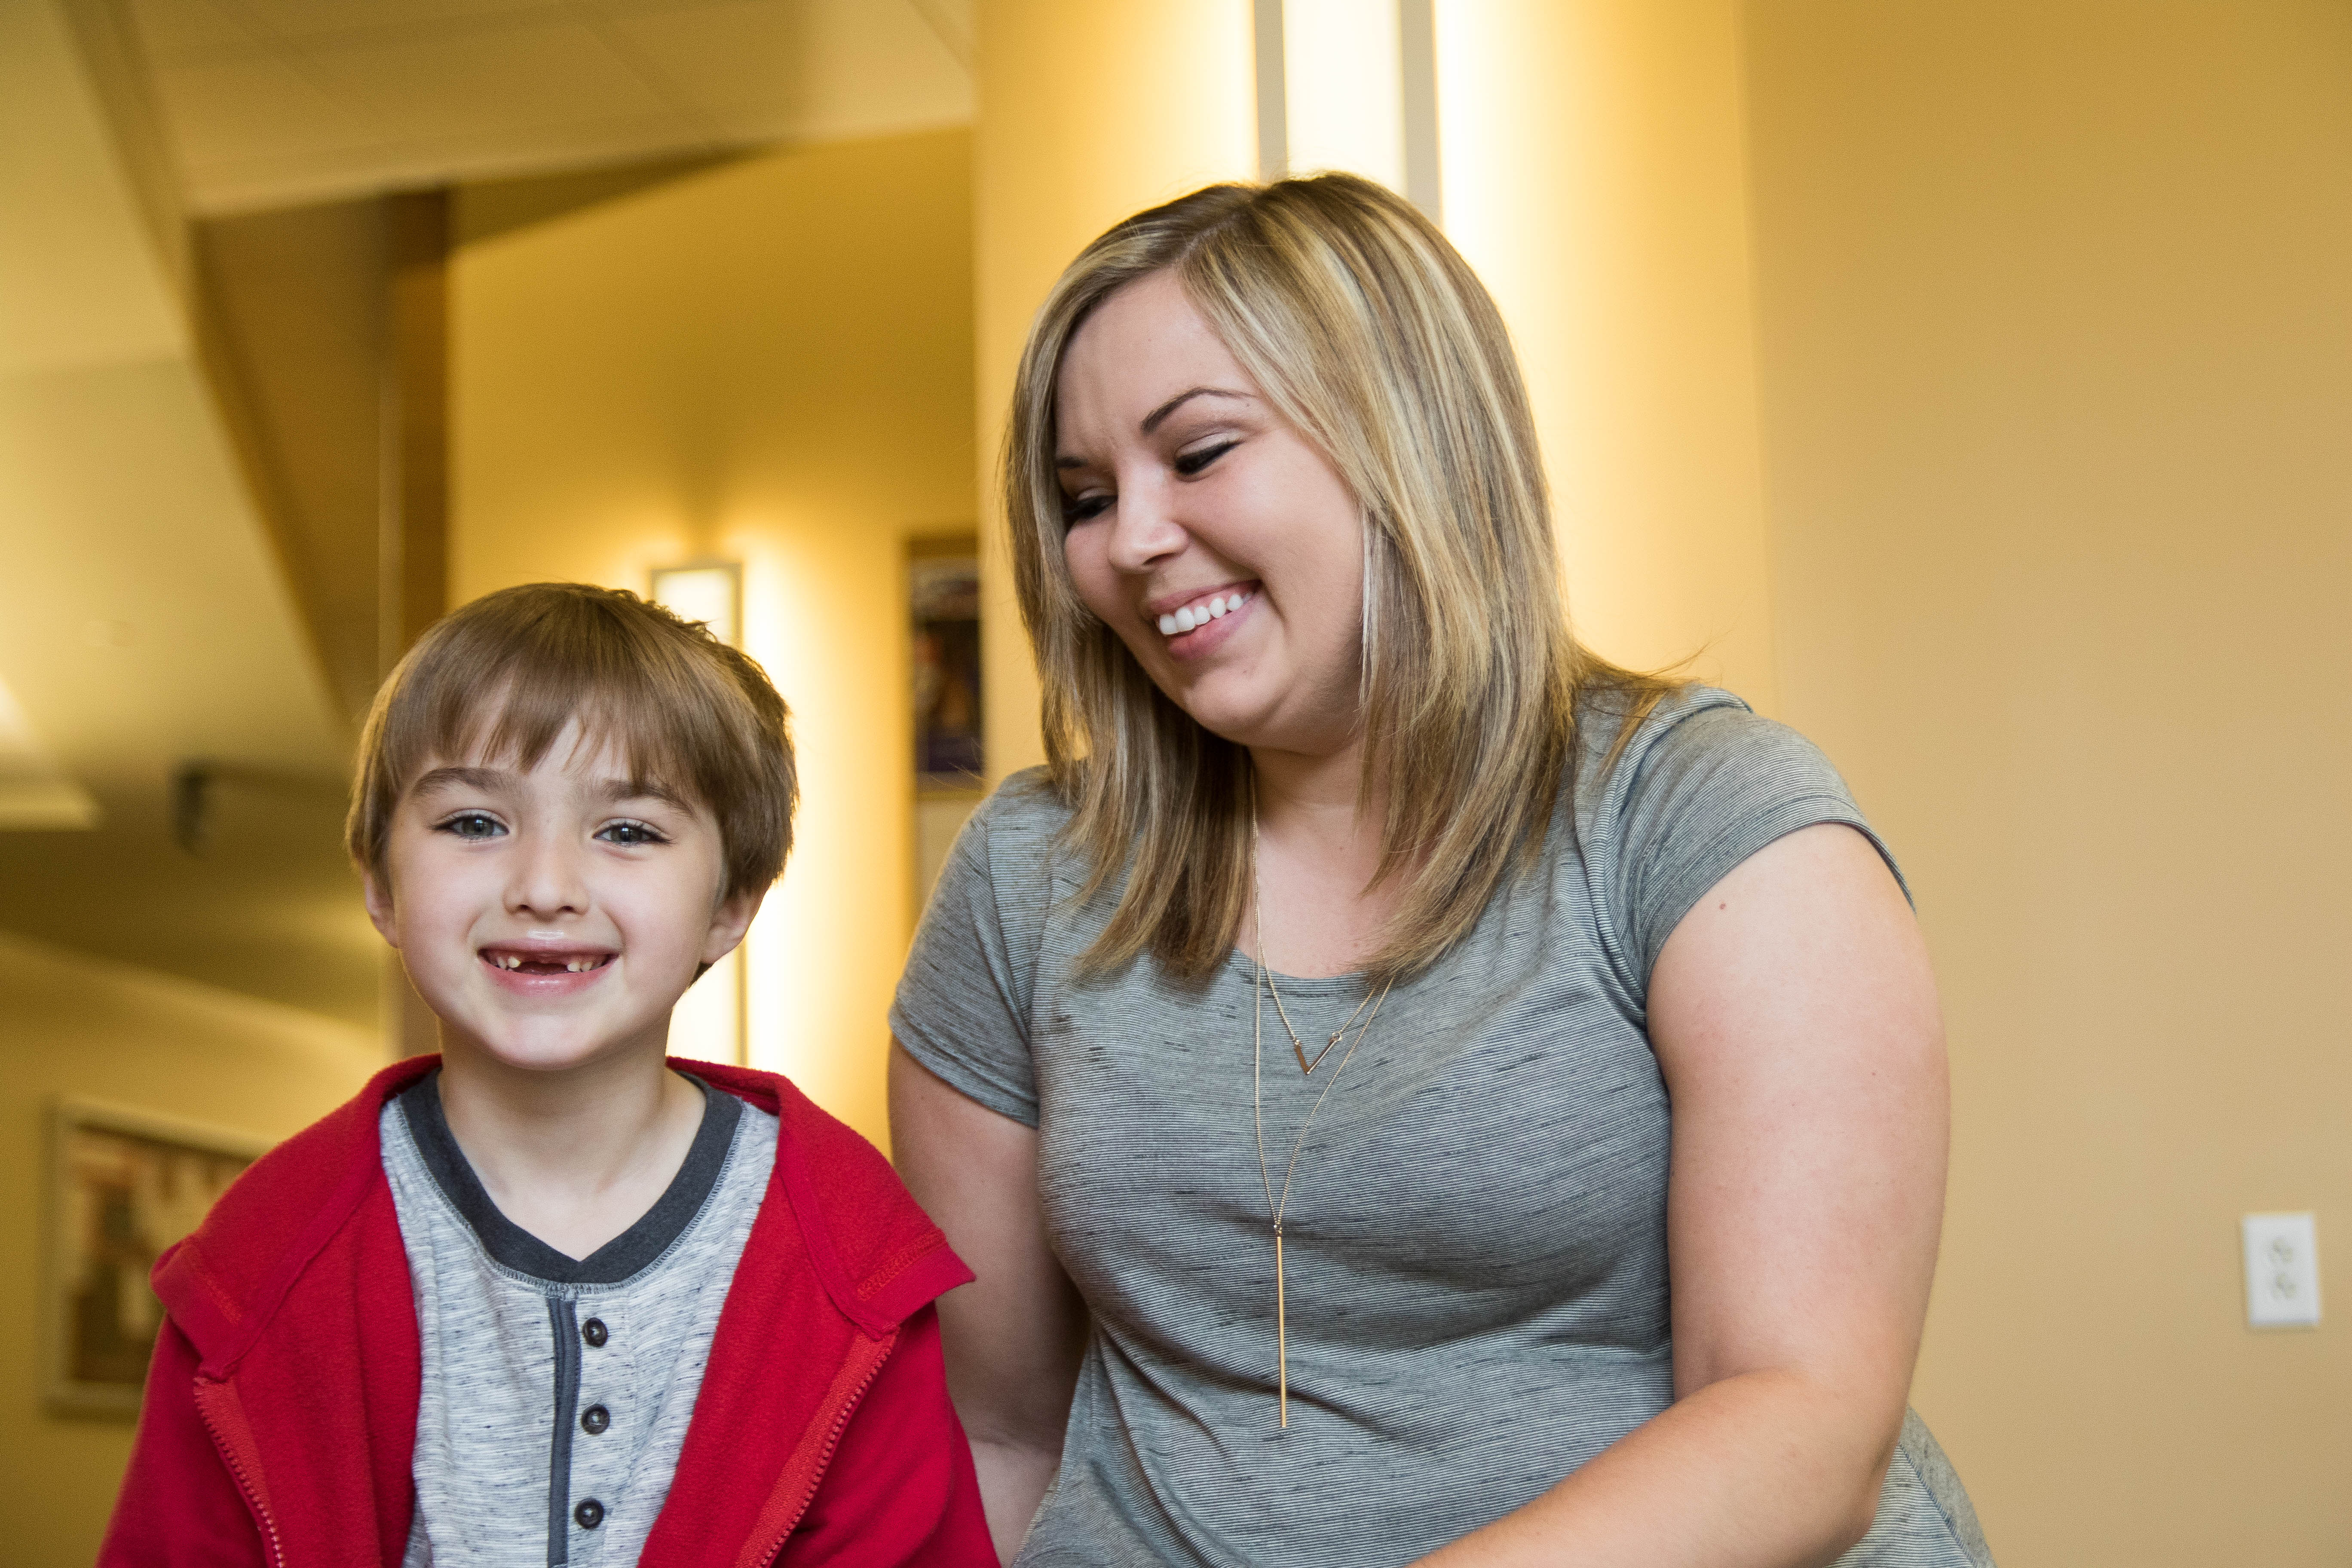 Sarah Loyd attends Ball State while raising her son, Kizer.